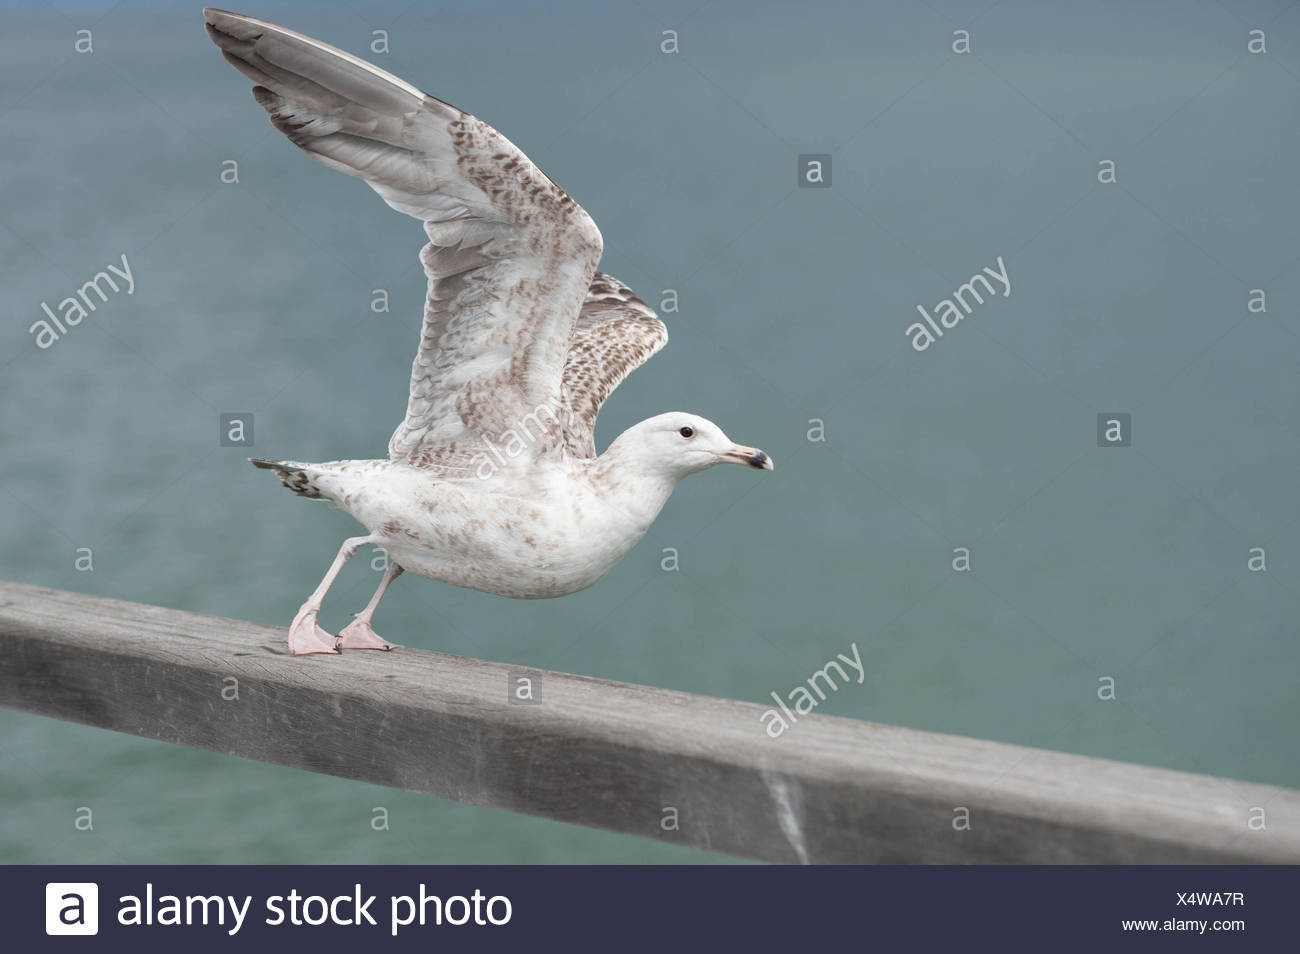 Seagull Spreading Wings And Preparing To Fly Away - Stock Image